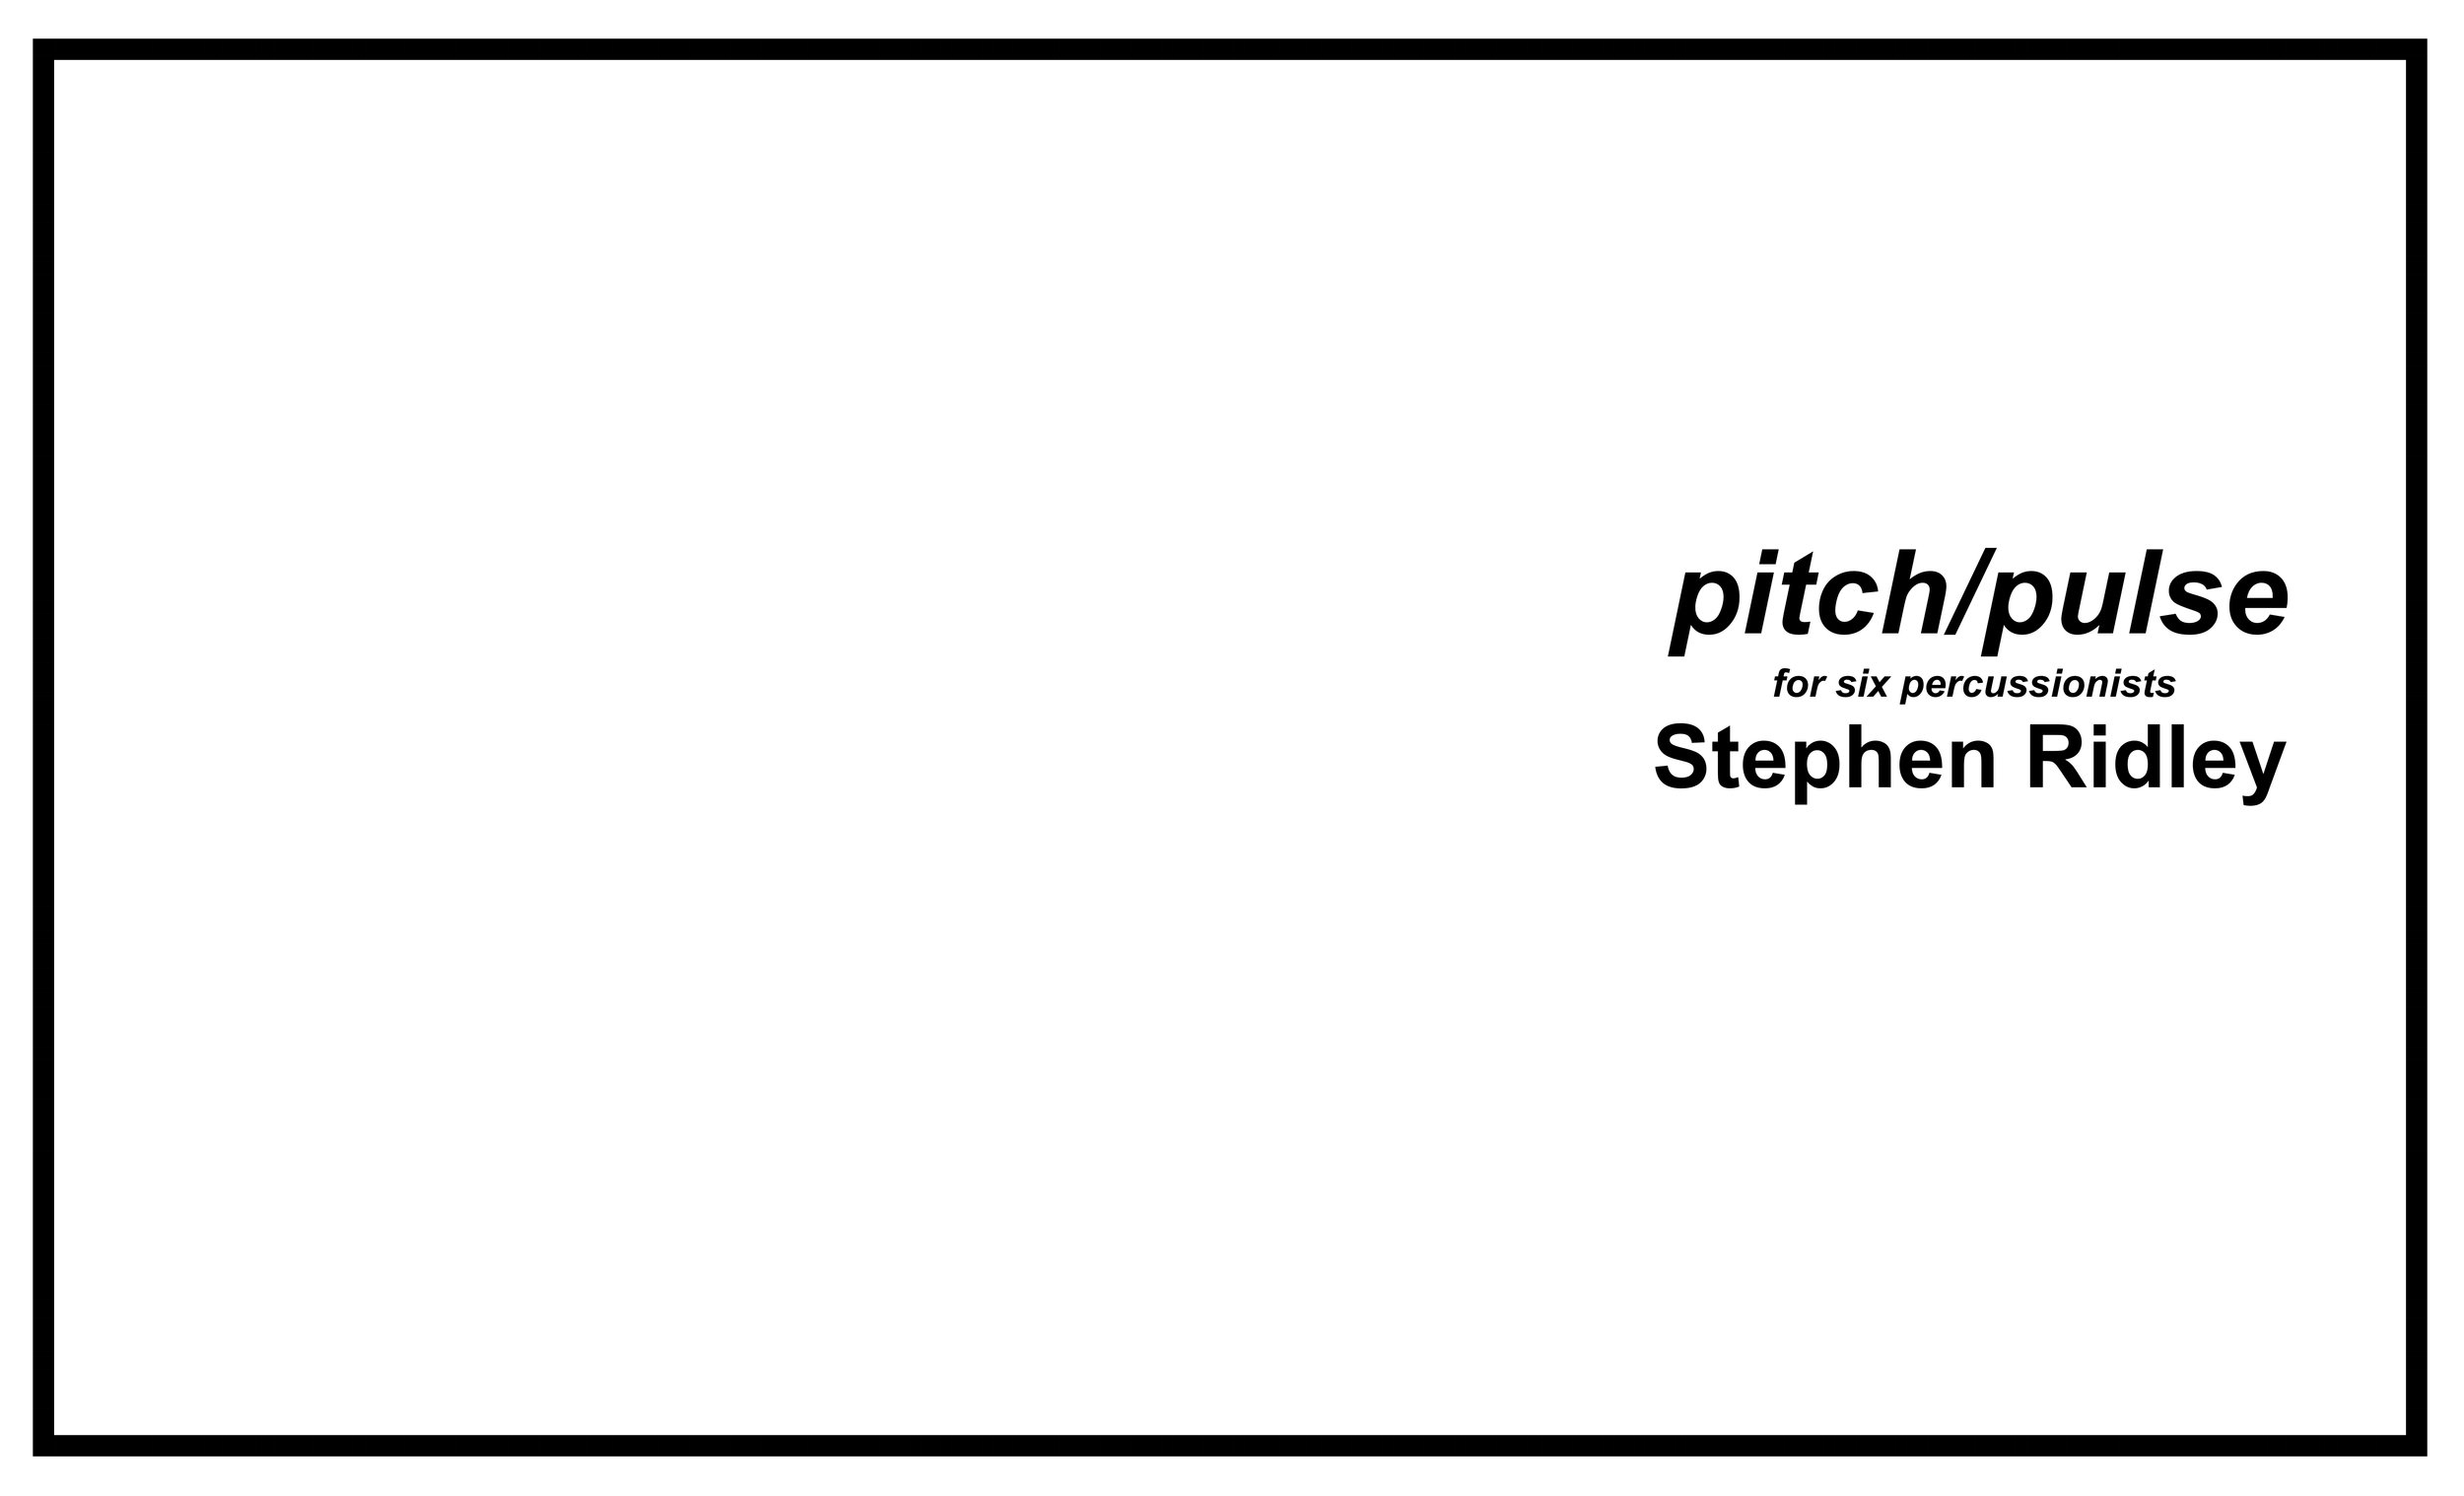 Stephen Ridley pitch/pulse cover